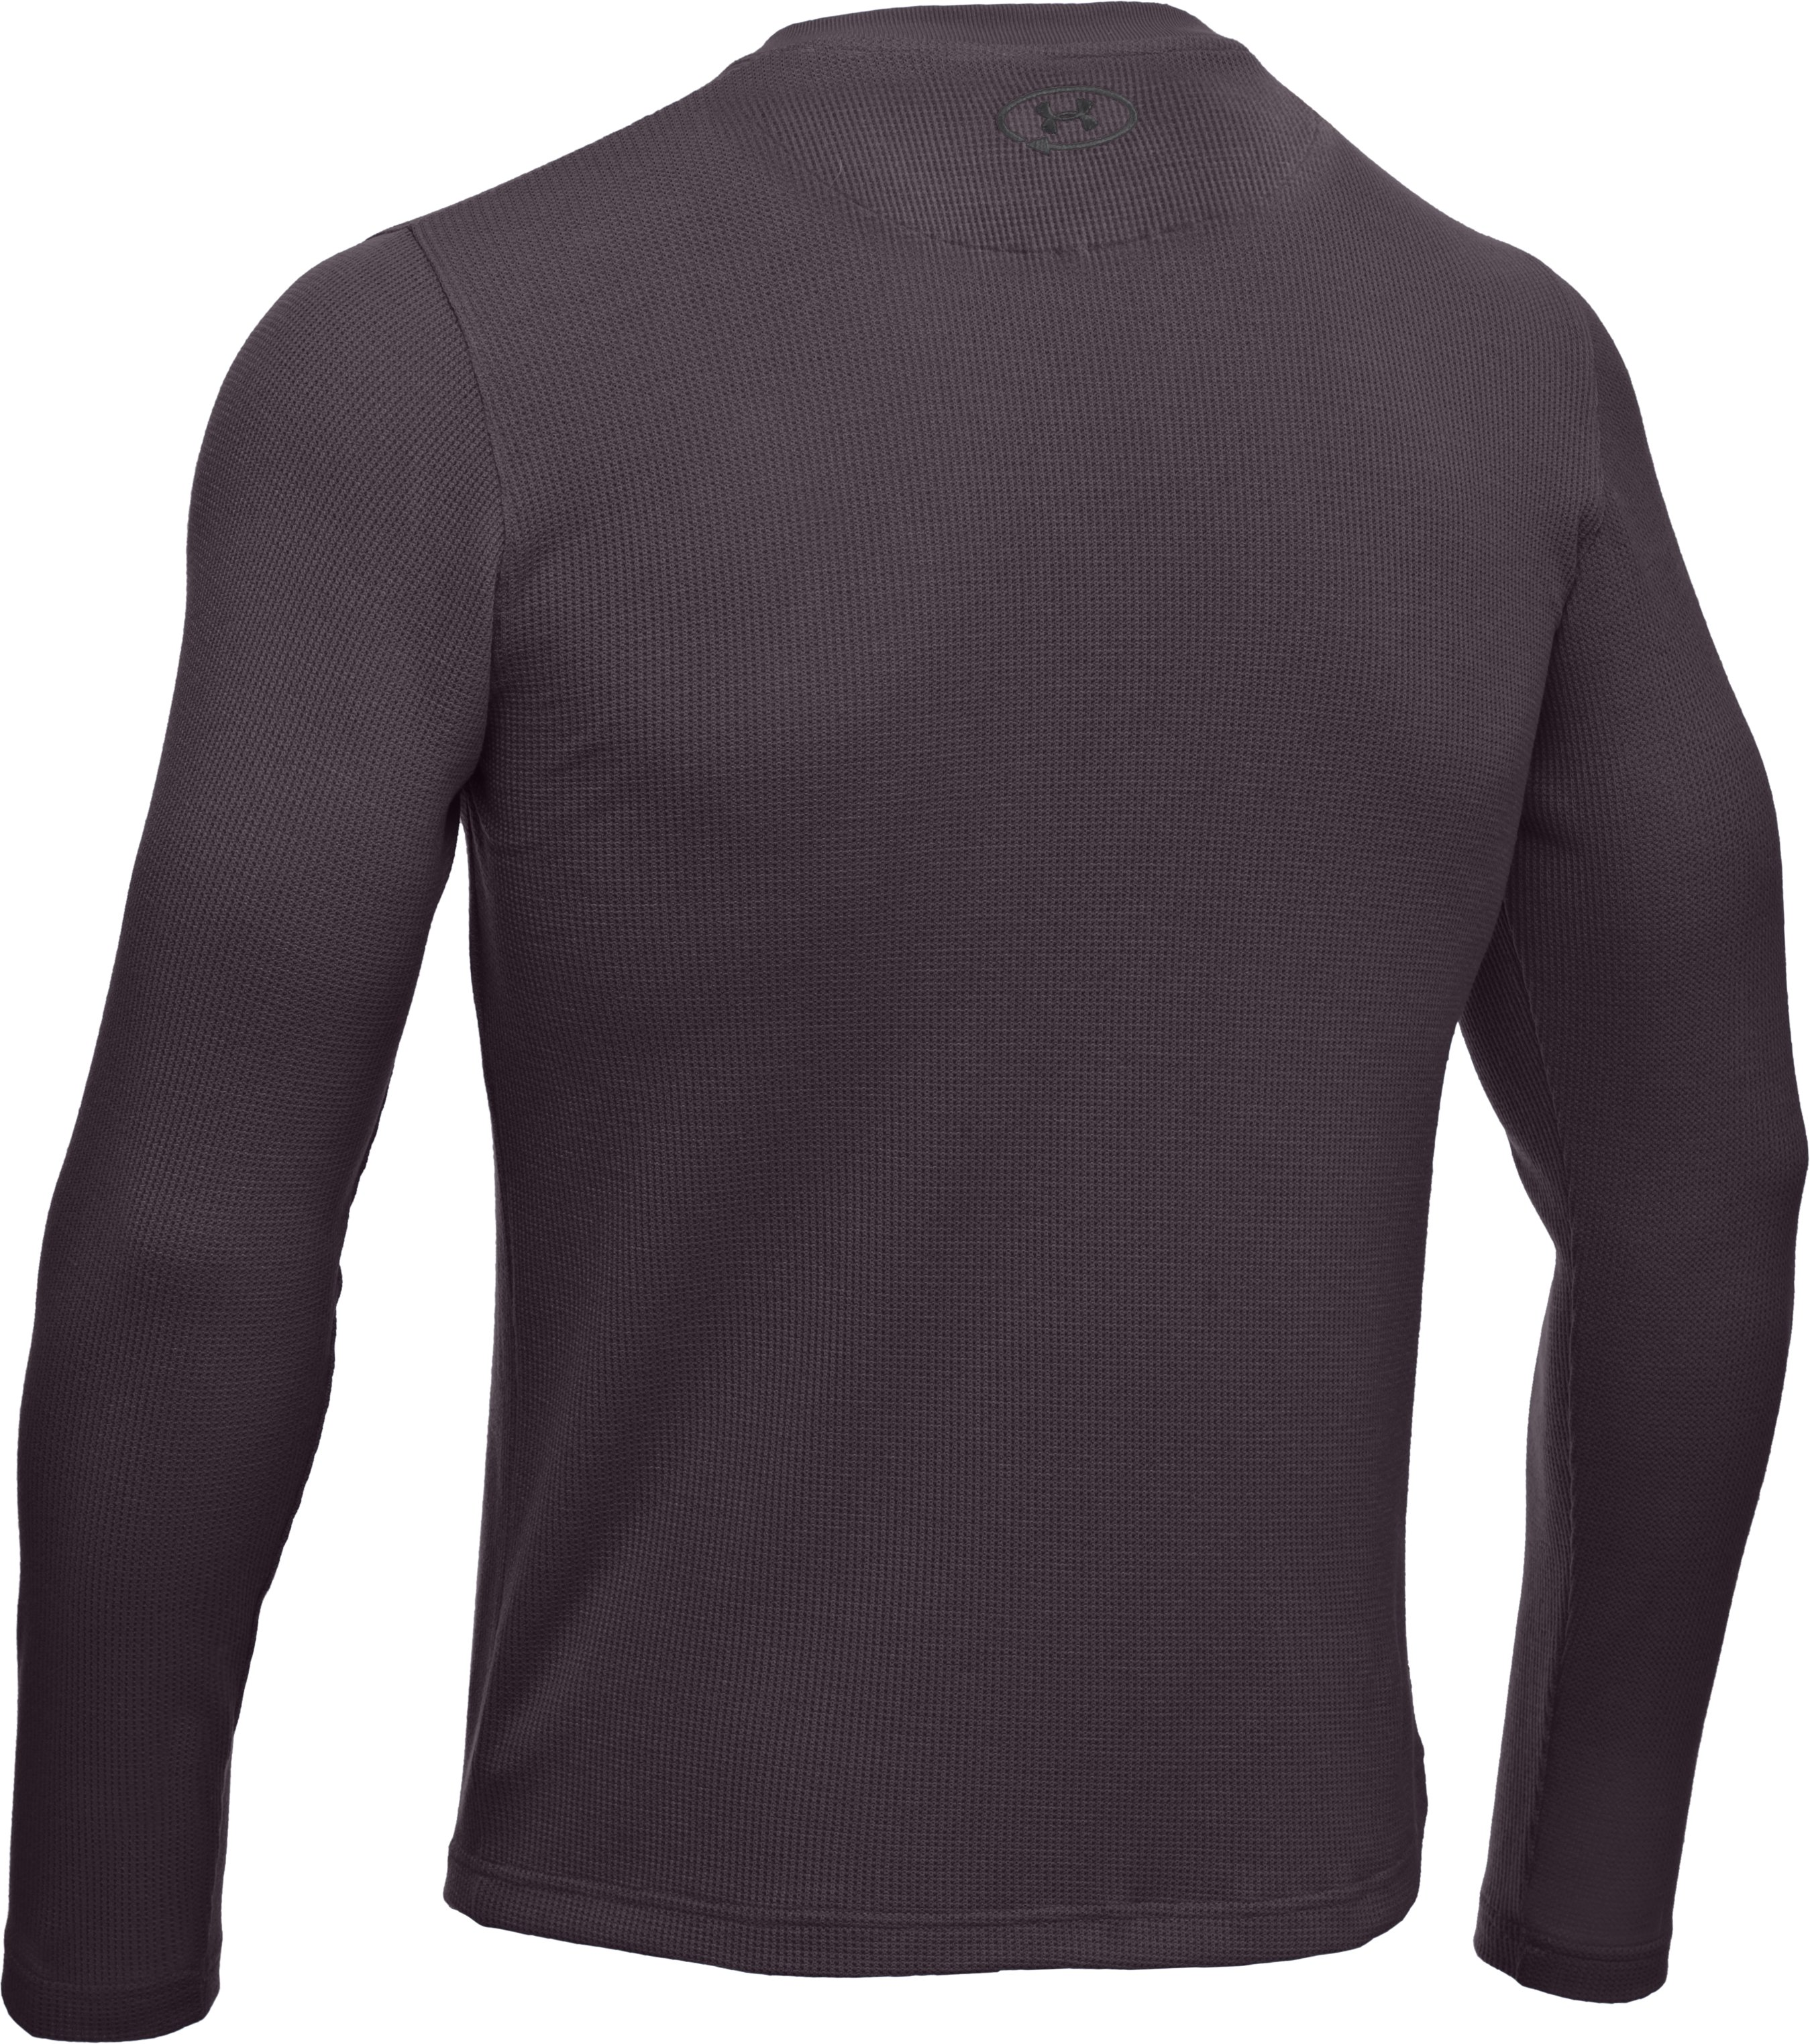 Men's Long Sleeve Waffle Crew, Charcoal,